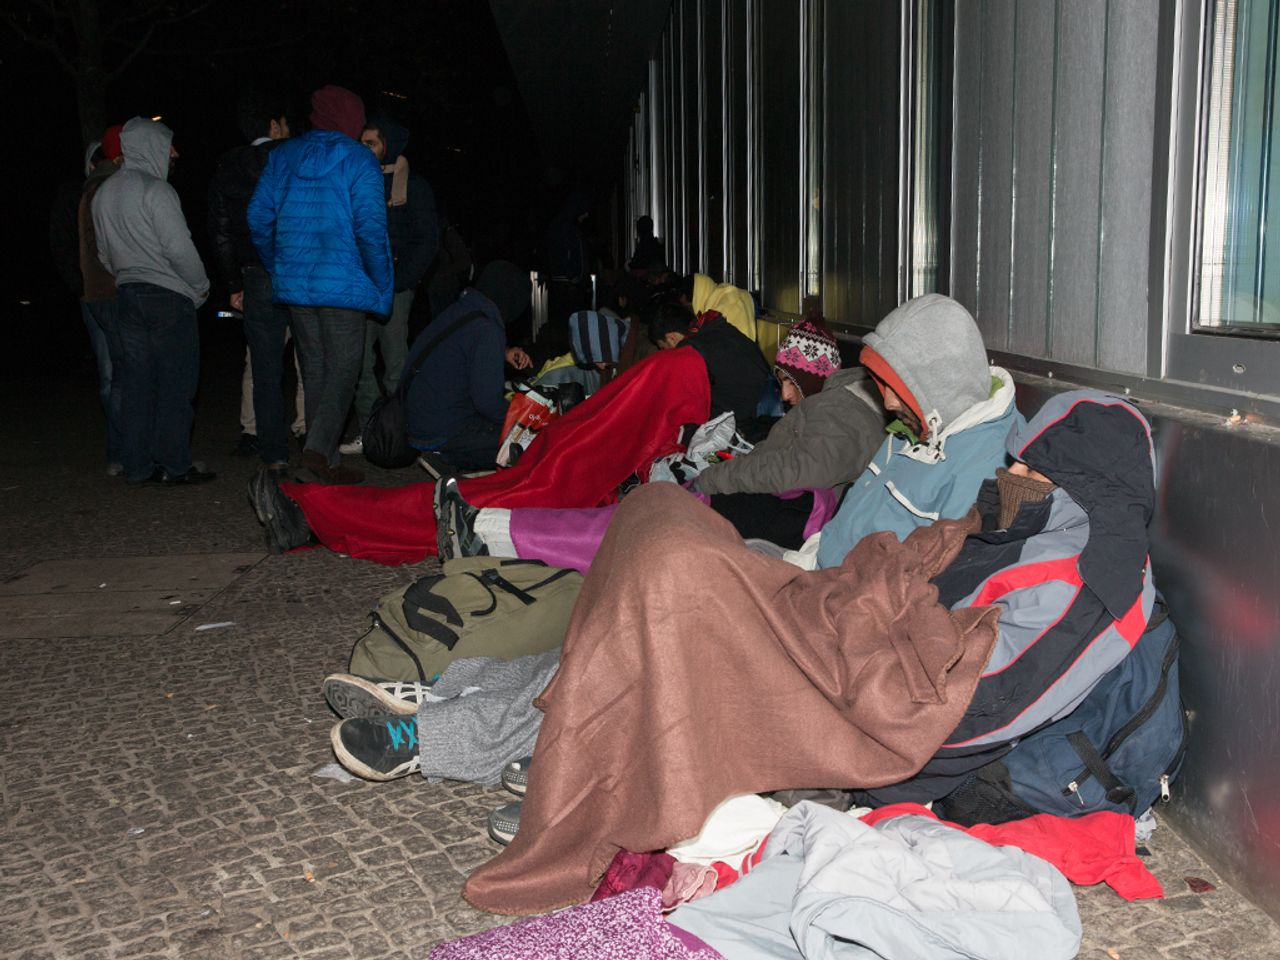 It's 21:00 at LaGeSo: refugees sit less than ten meters from the place where candles have been lit. They have wrapped themselves in blankets to survive the night in freezing temperatures